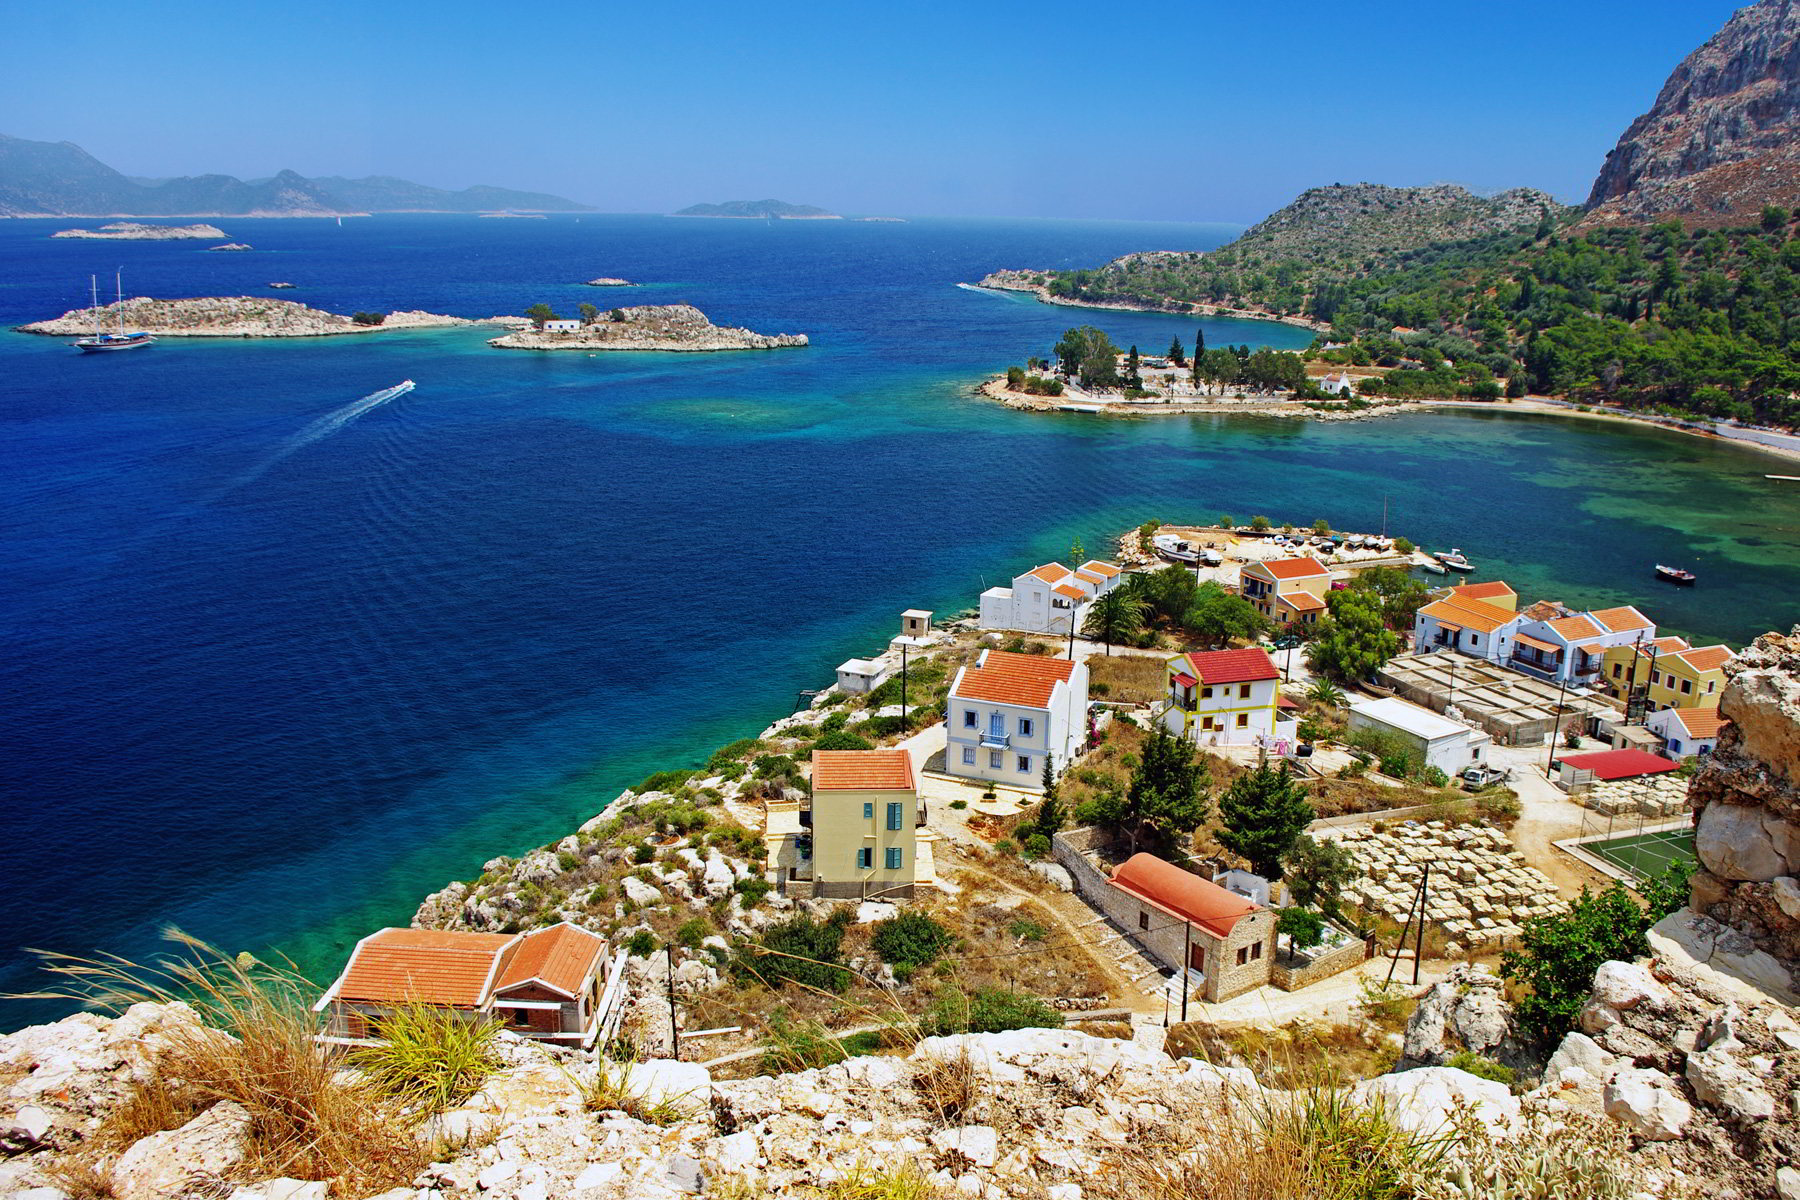 IENE Visited Kastellorizo island as Part of Pilot Study Project